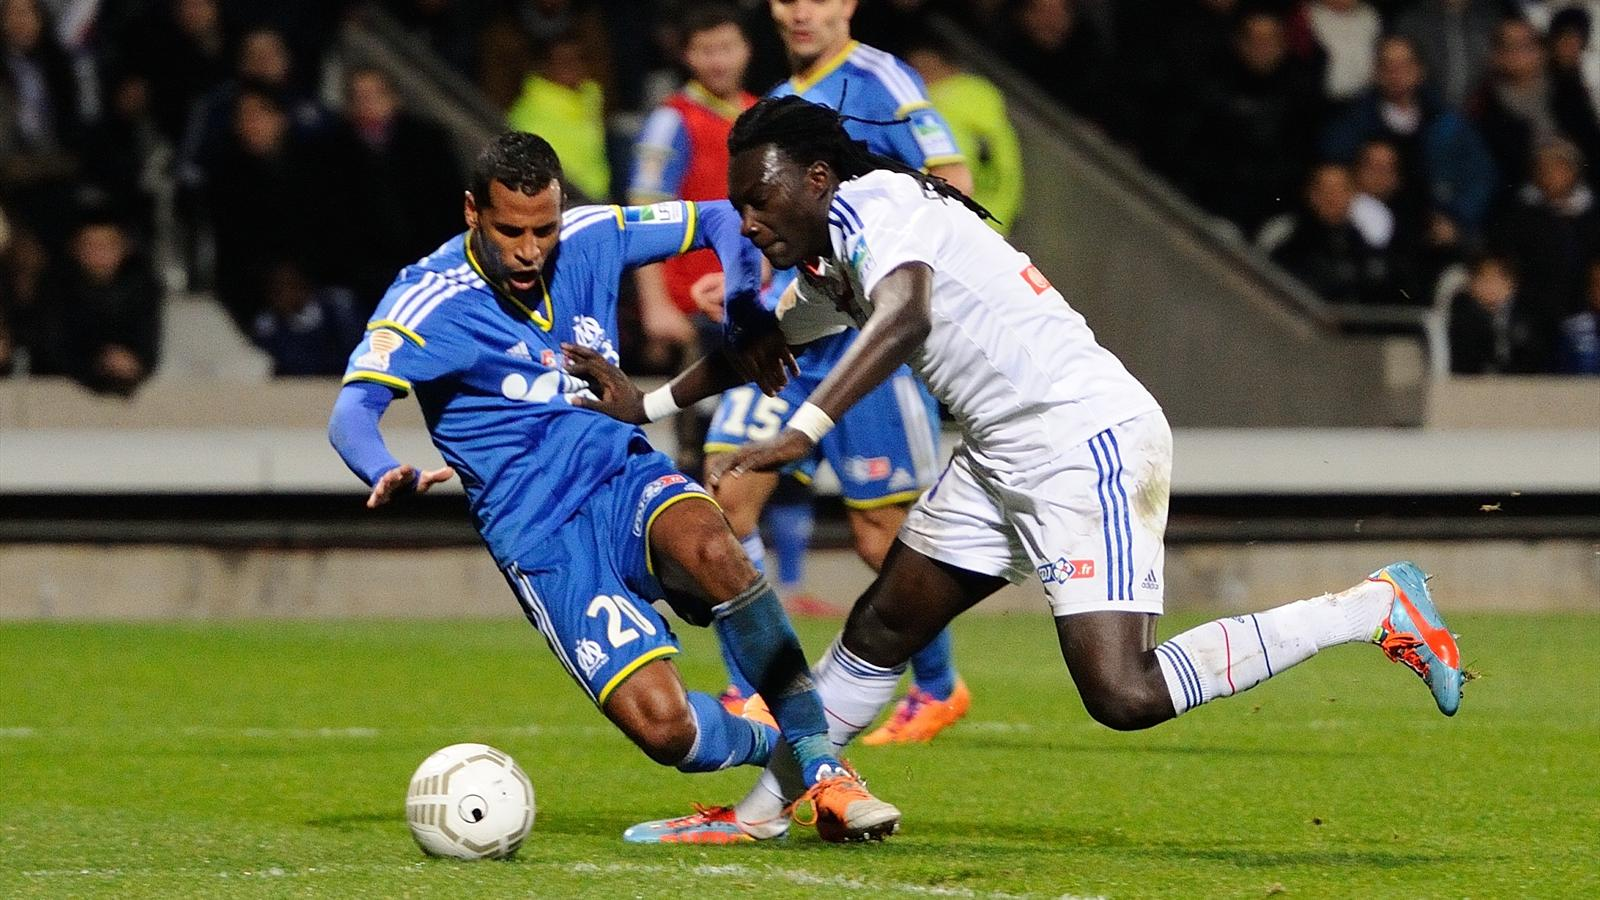 Match Olympique Lyonnais vs Olympique de Marseille en direct live streaming